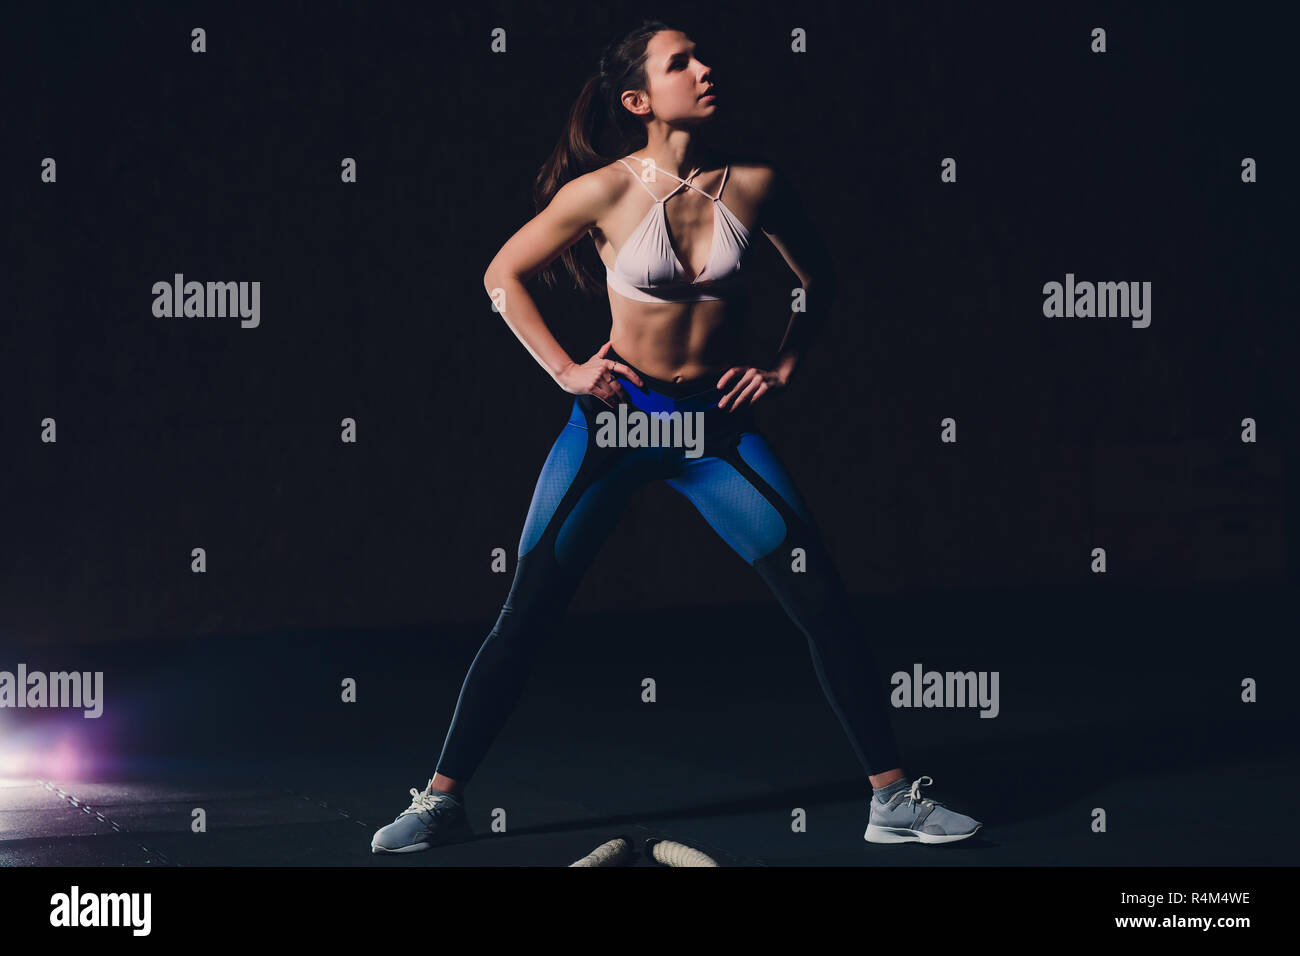 beautiful athletic woman working out with ropes box gym copyspace confidence motivation sports lifestyle activity hobby healthy powerful femininity training. - Stock Image